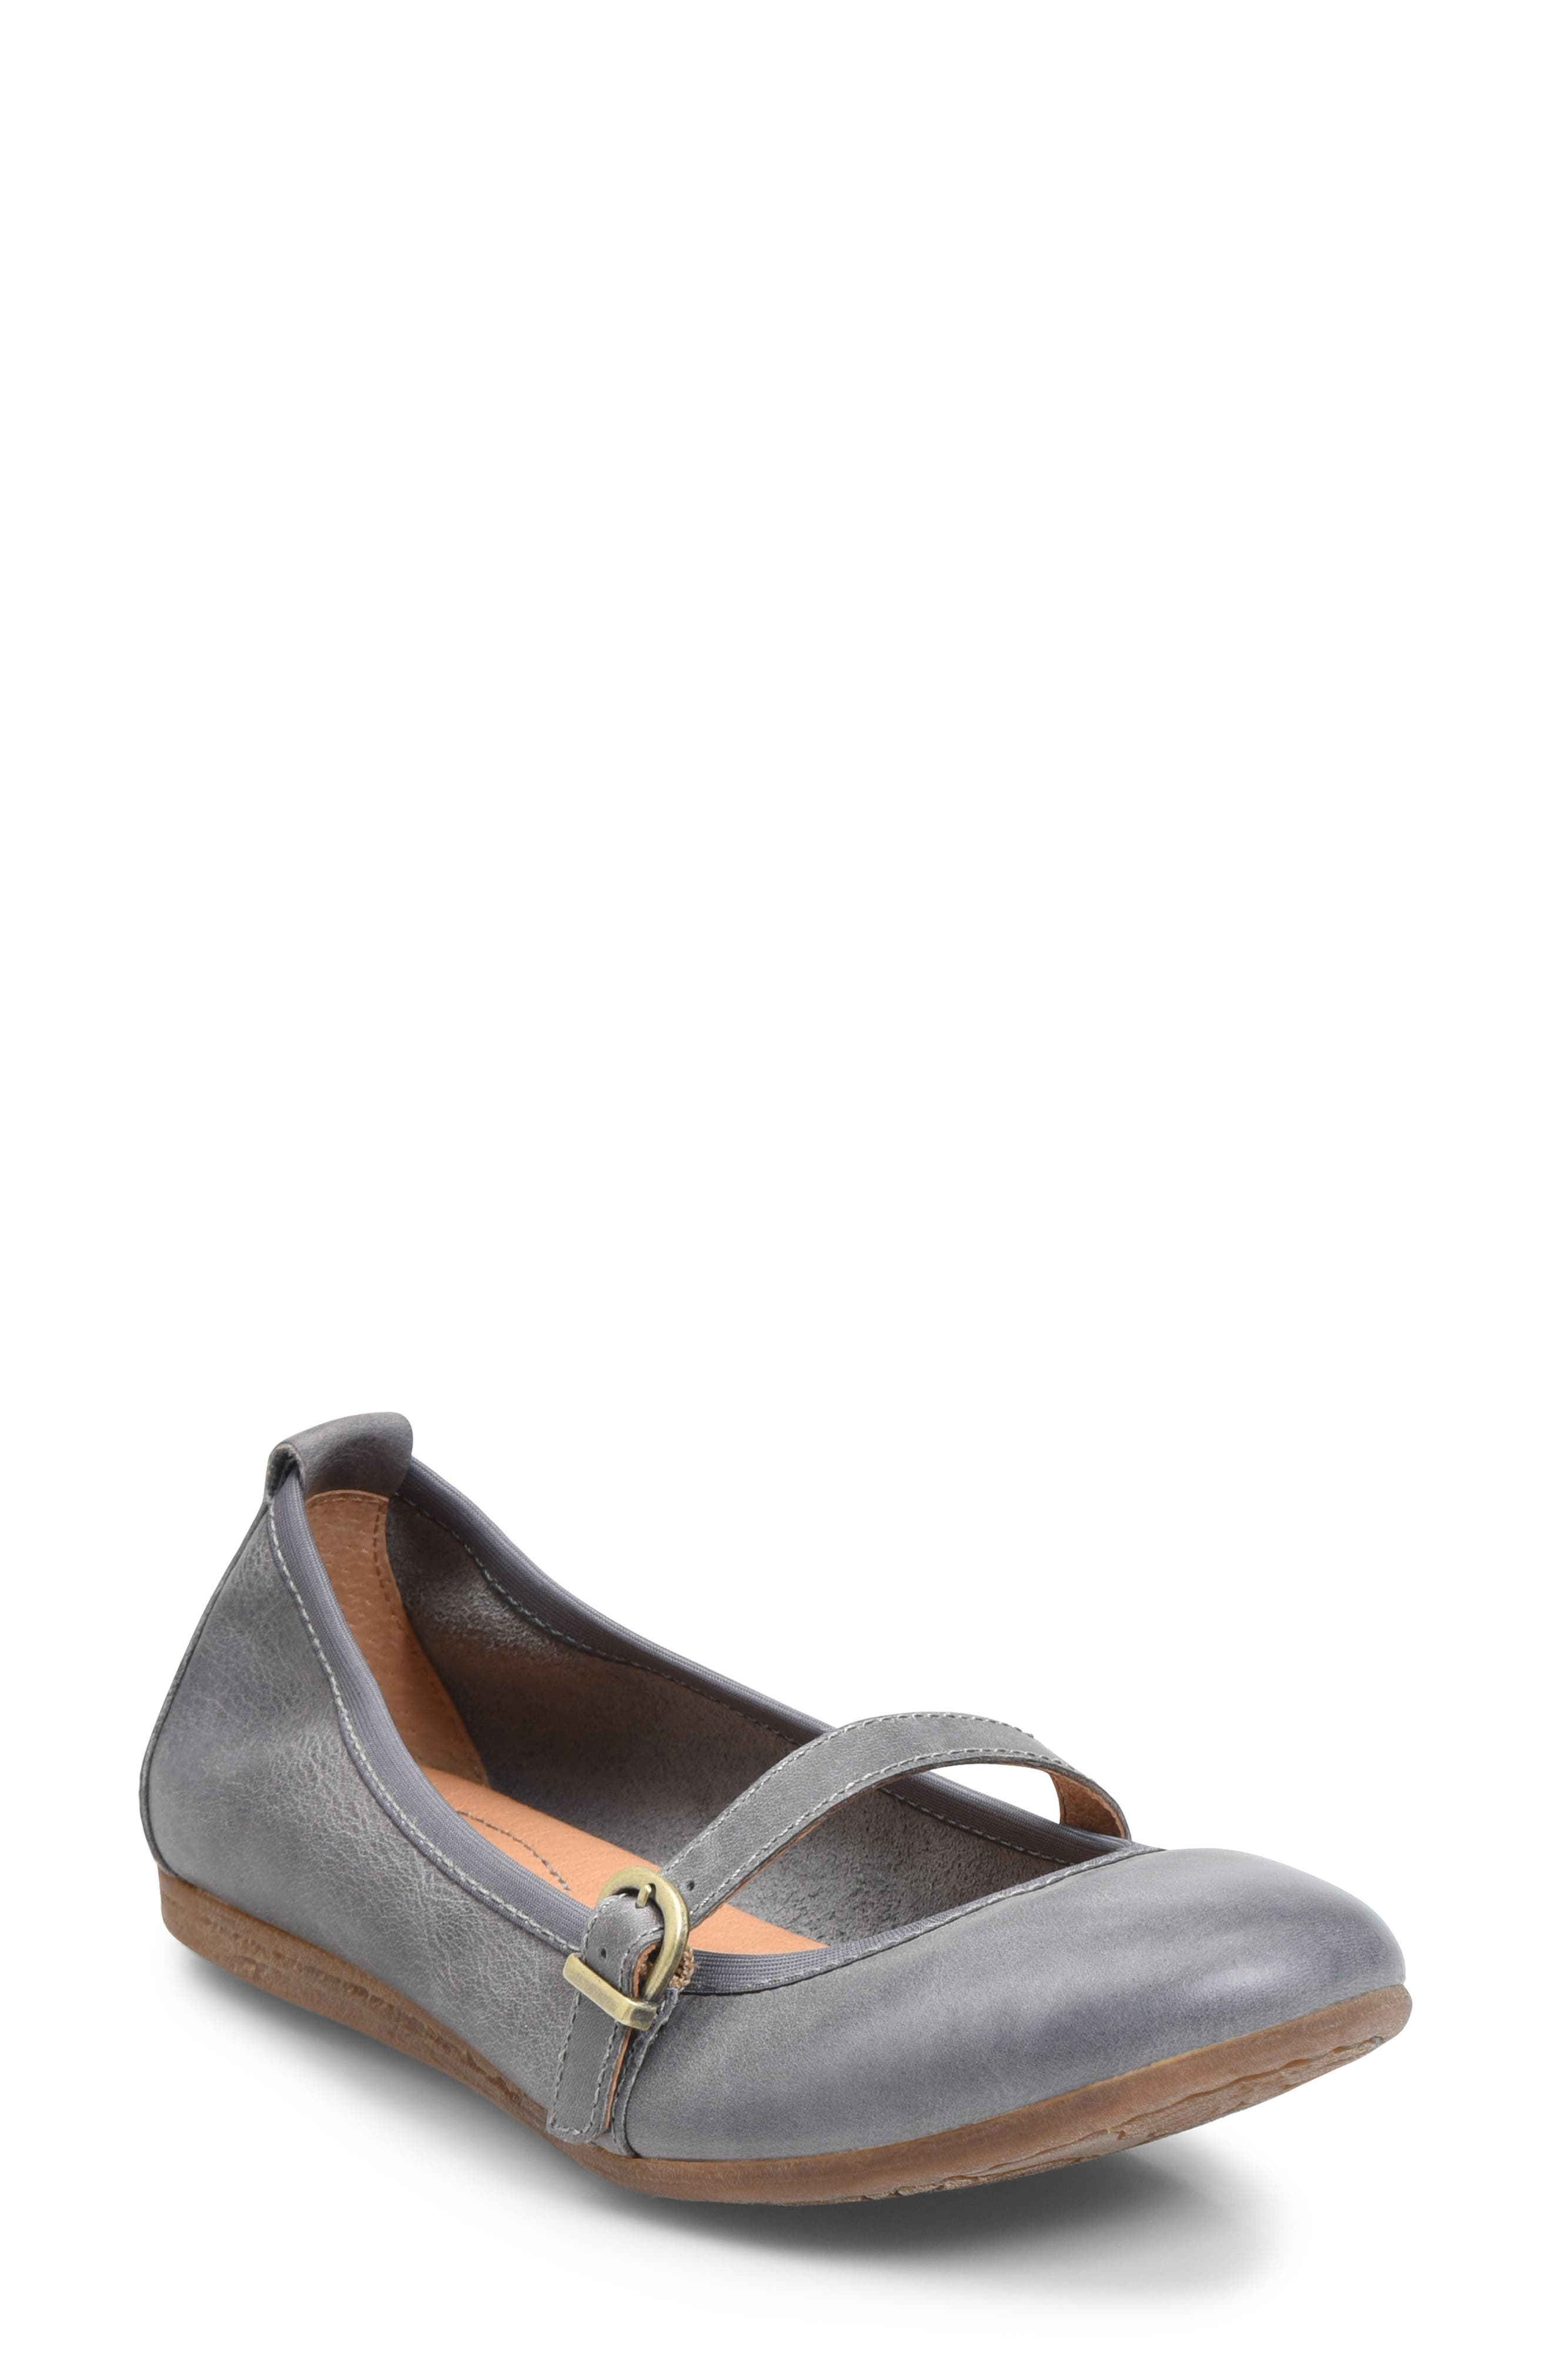 Image of Born Curlew Mary Jane Leather Flat